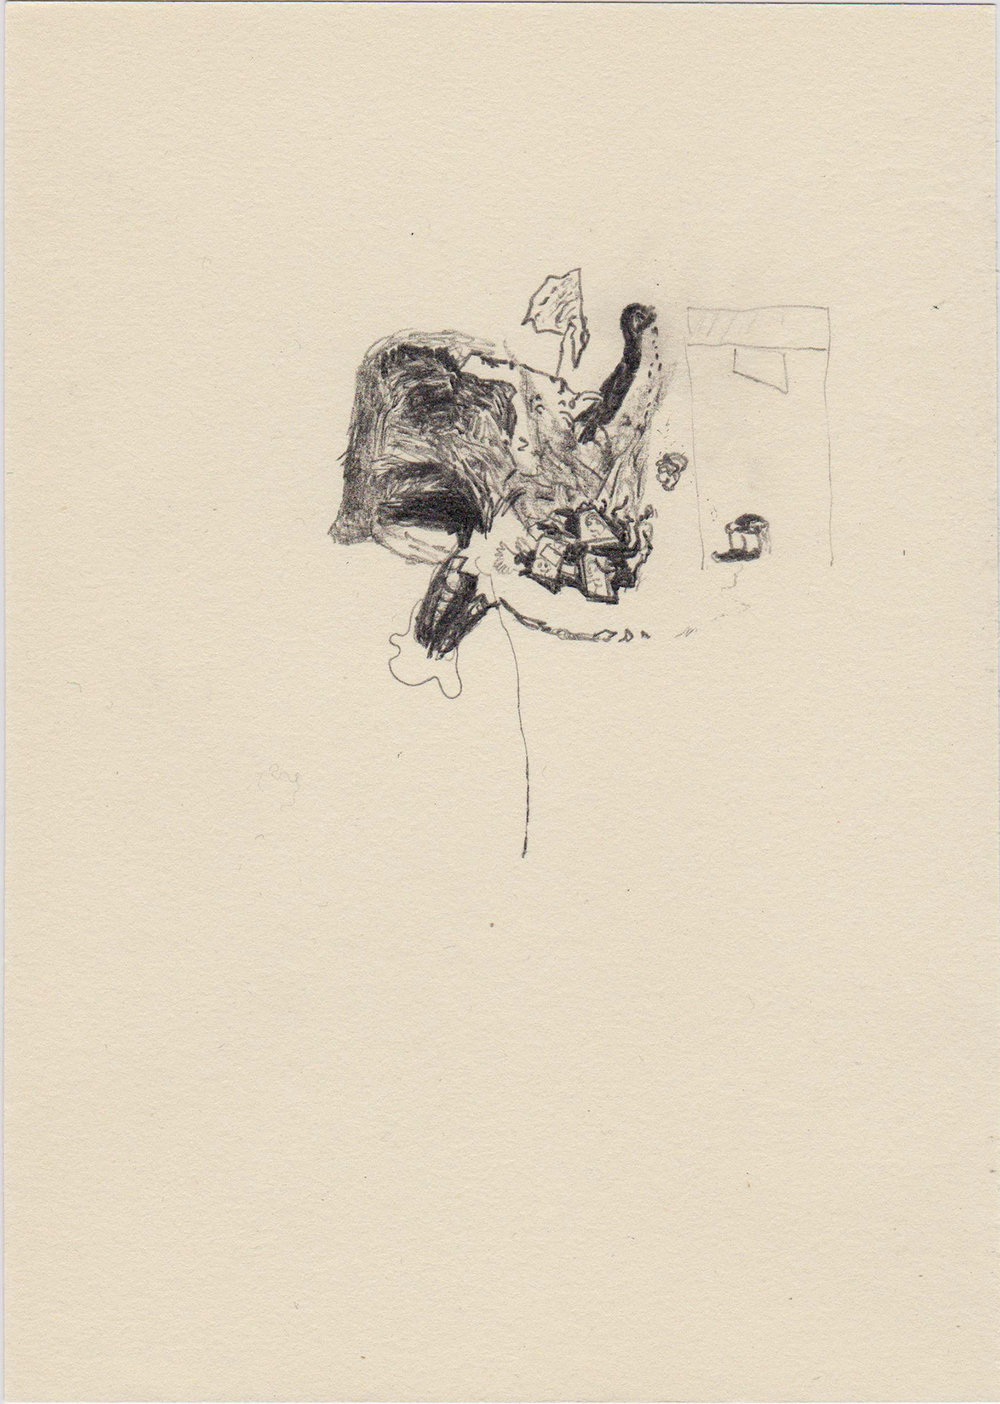 20 x 14,5cm; Judging machine; 2015; l+ípis s papel.jpg